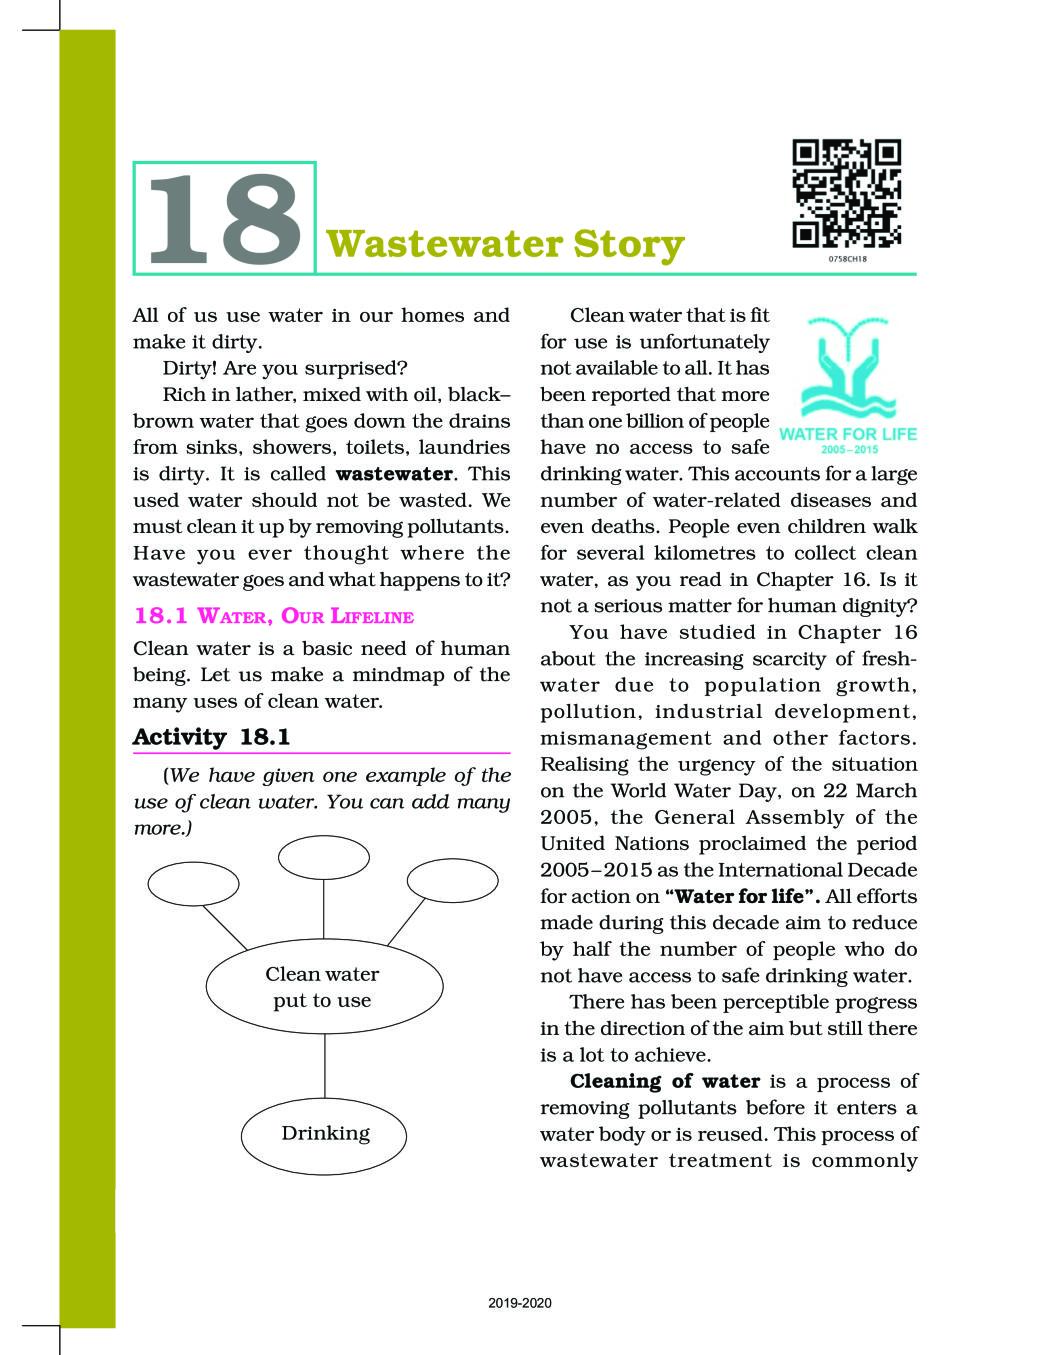 NCERT Book Class 7 Science Chapter 18 Waste Water Story